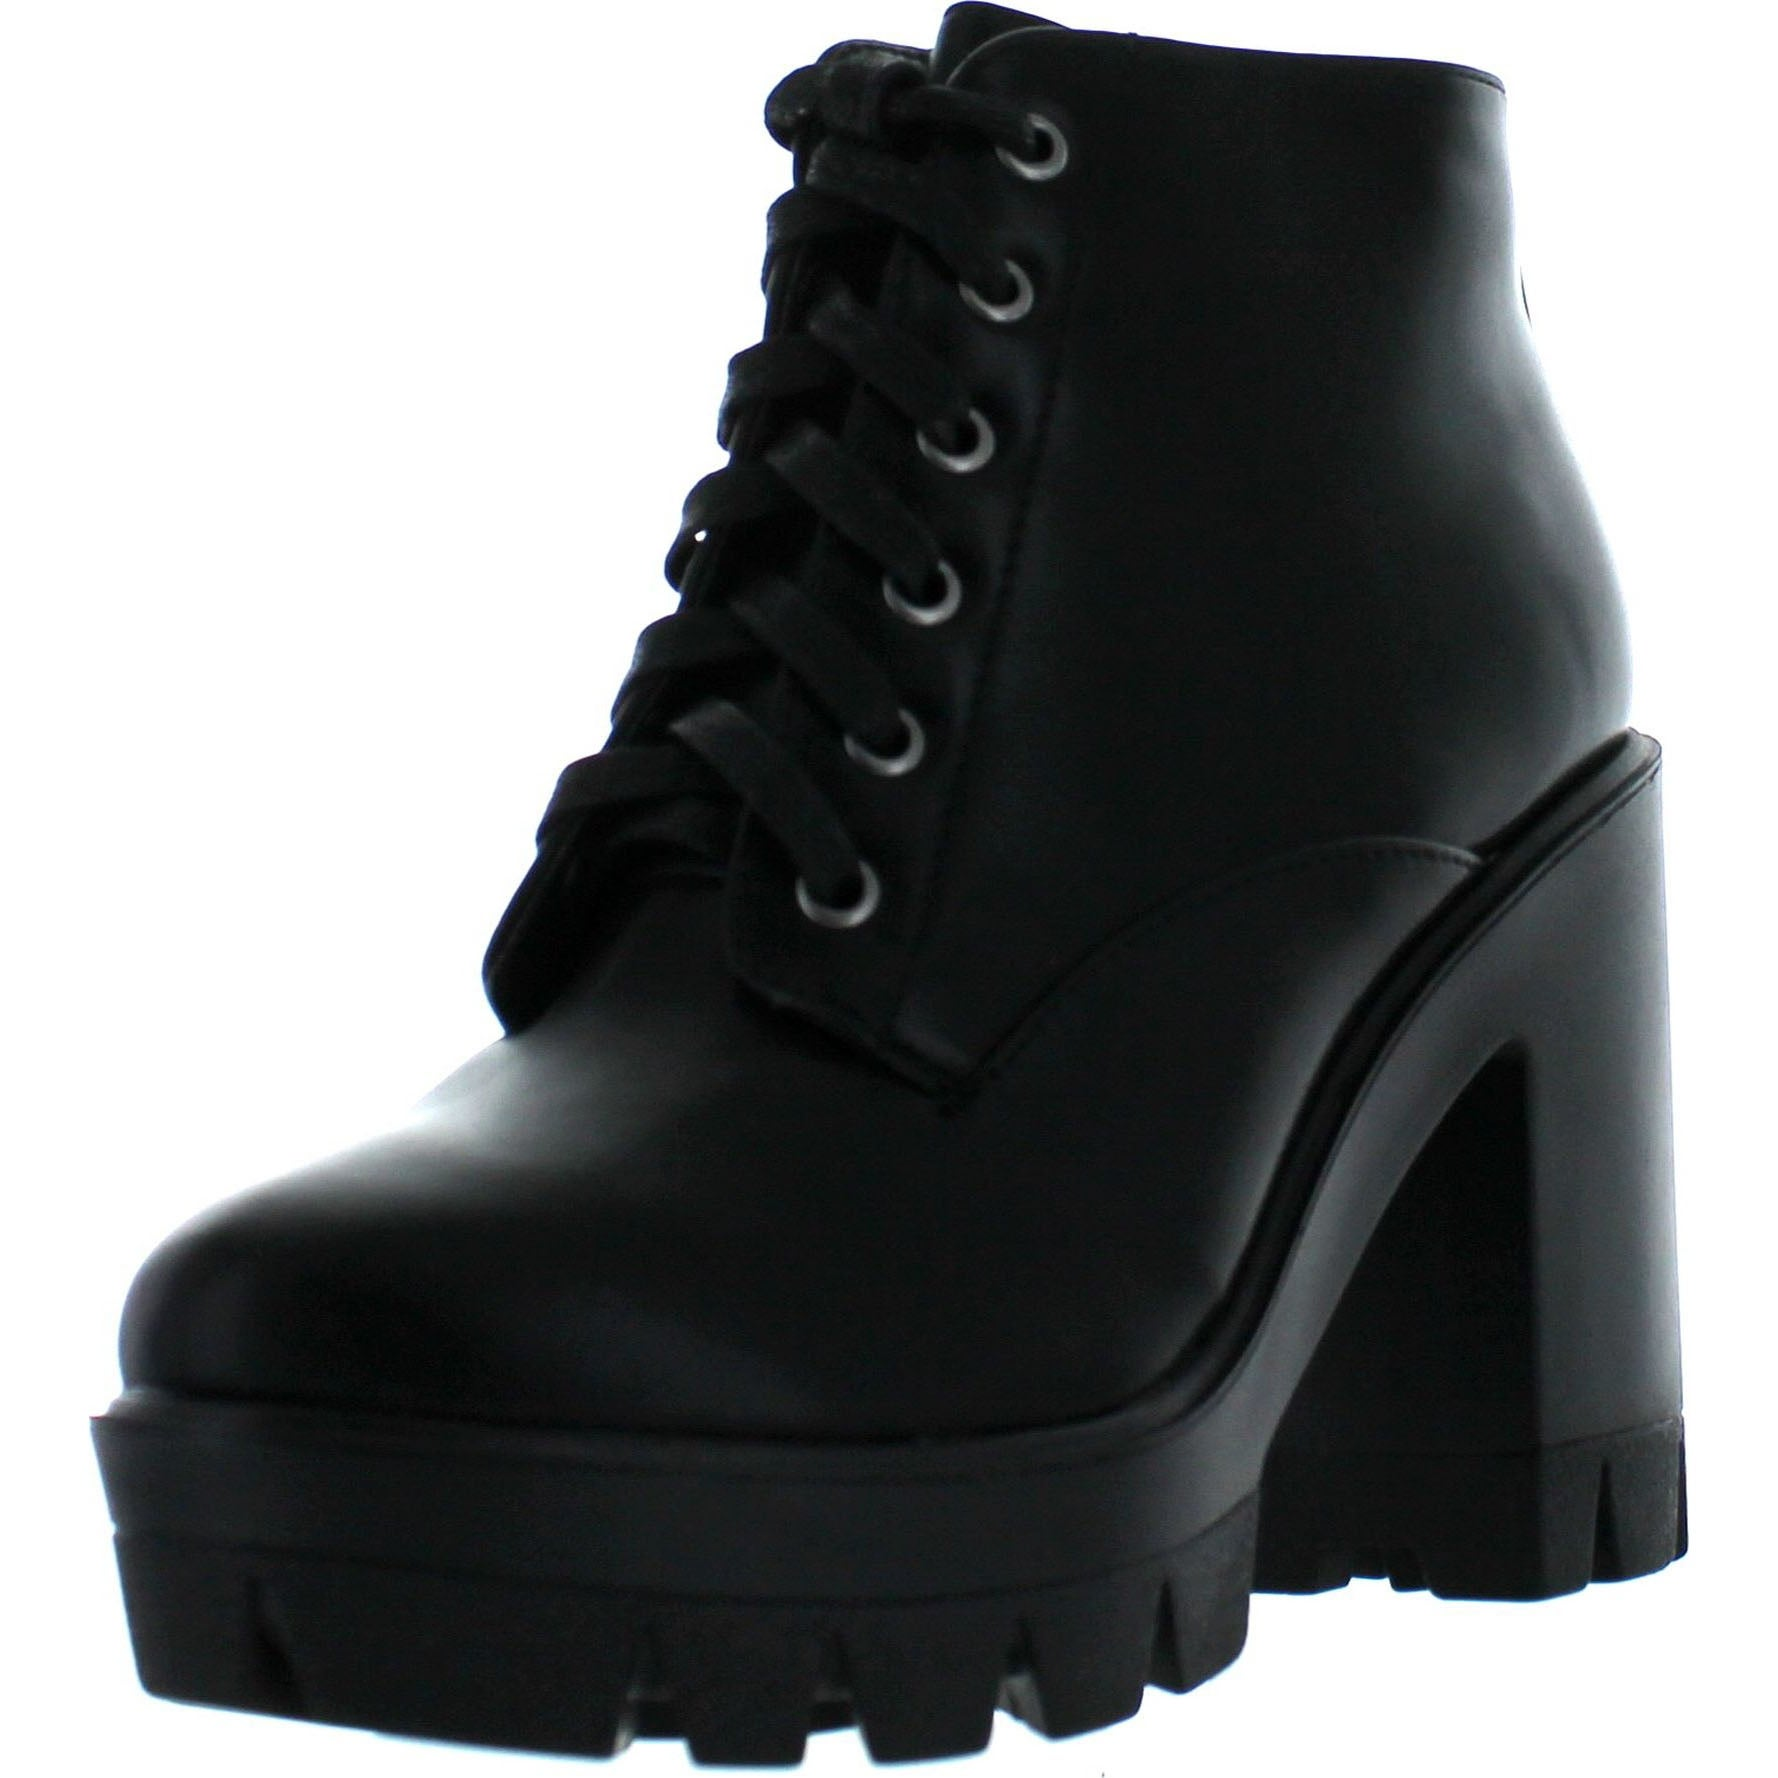 faf9cbf32b Shop Bamboo Jonas-02 Women Lace Up Chunky Heel Lug Sole Platform Combat  Ankle Bootie - Free Shipping On Orders Over $45 - Overstock - 14312668